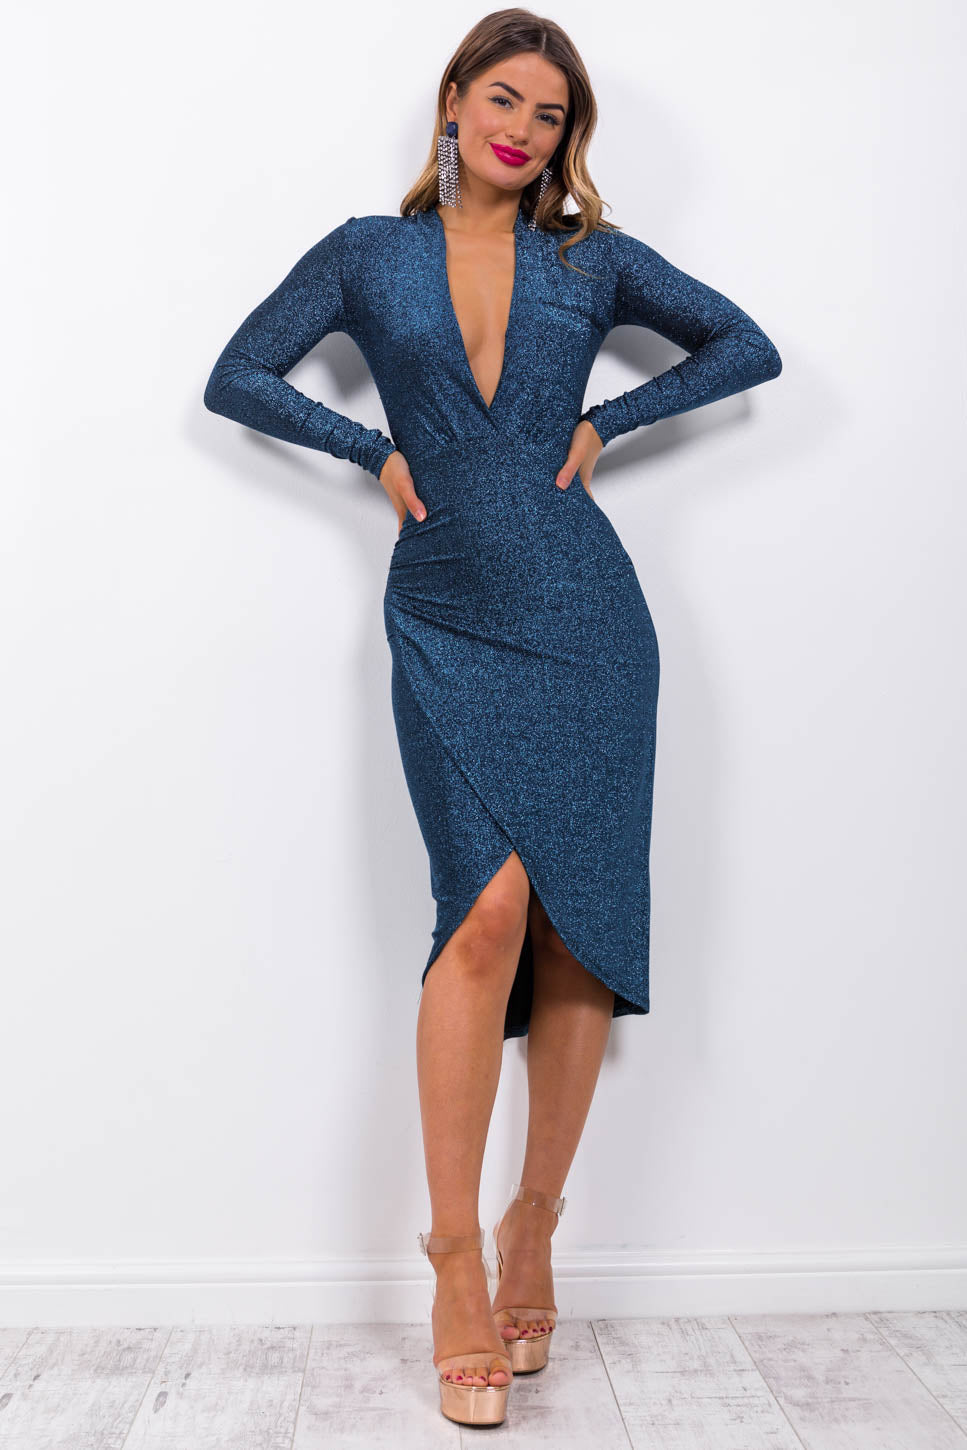 https://cdn.shopify.com/s/files/1/0062/6661/7925/files/product-video-primadonna-dress-in-blue-lurex.mp4?5988